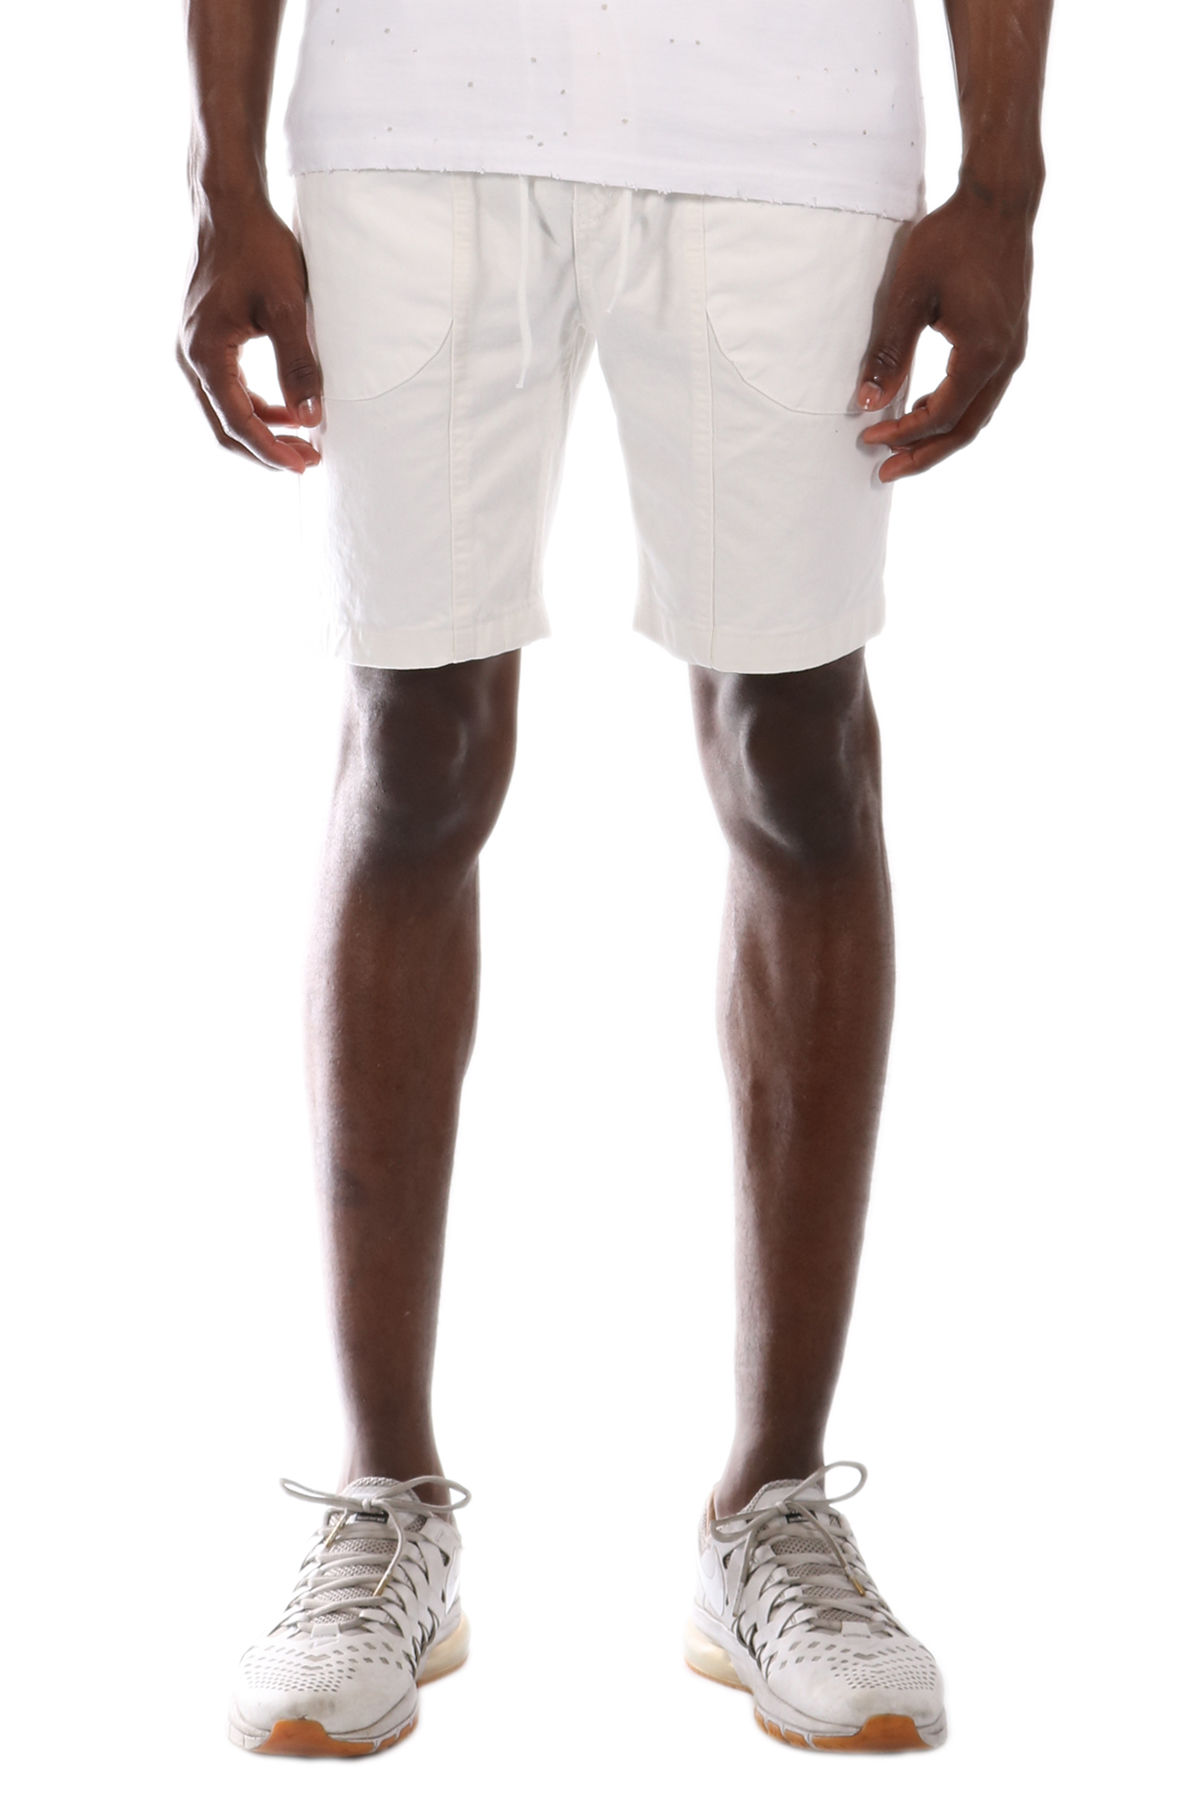 Image of The Allston Cotton Twill Metal Zipper Trim Elastic Banded Shorts in White